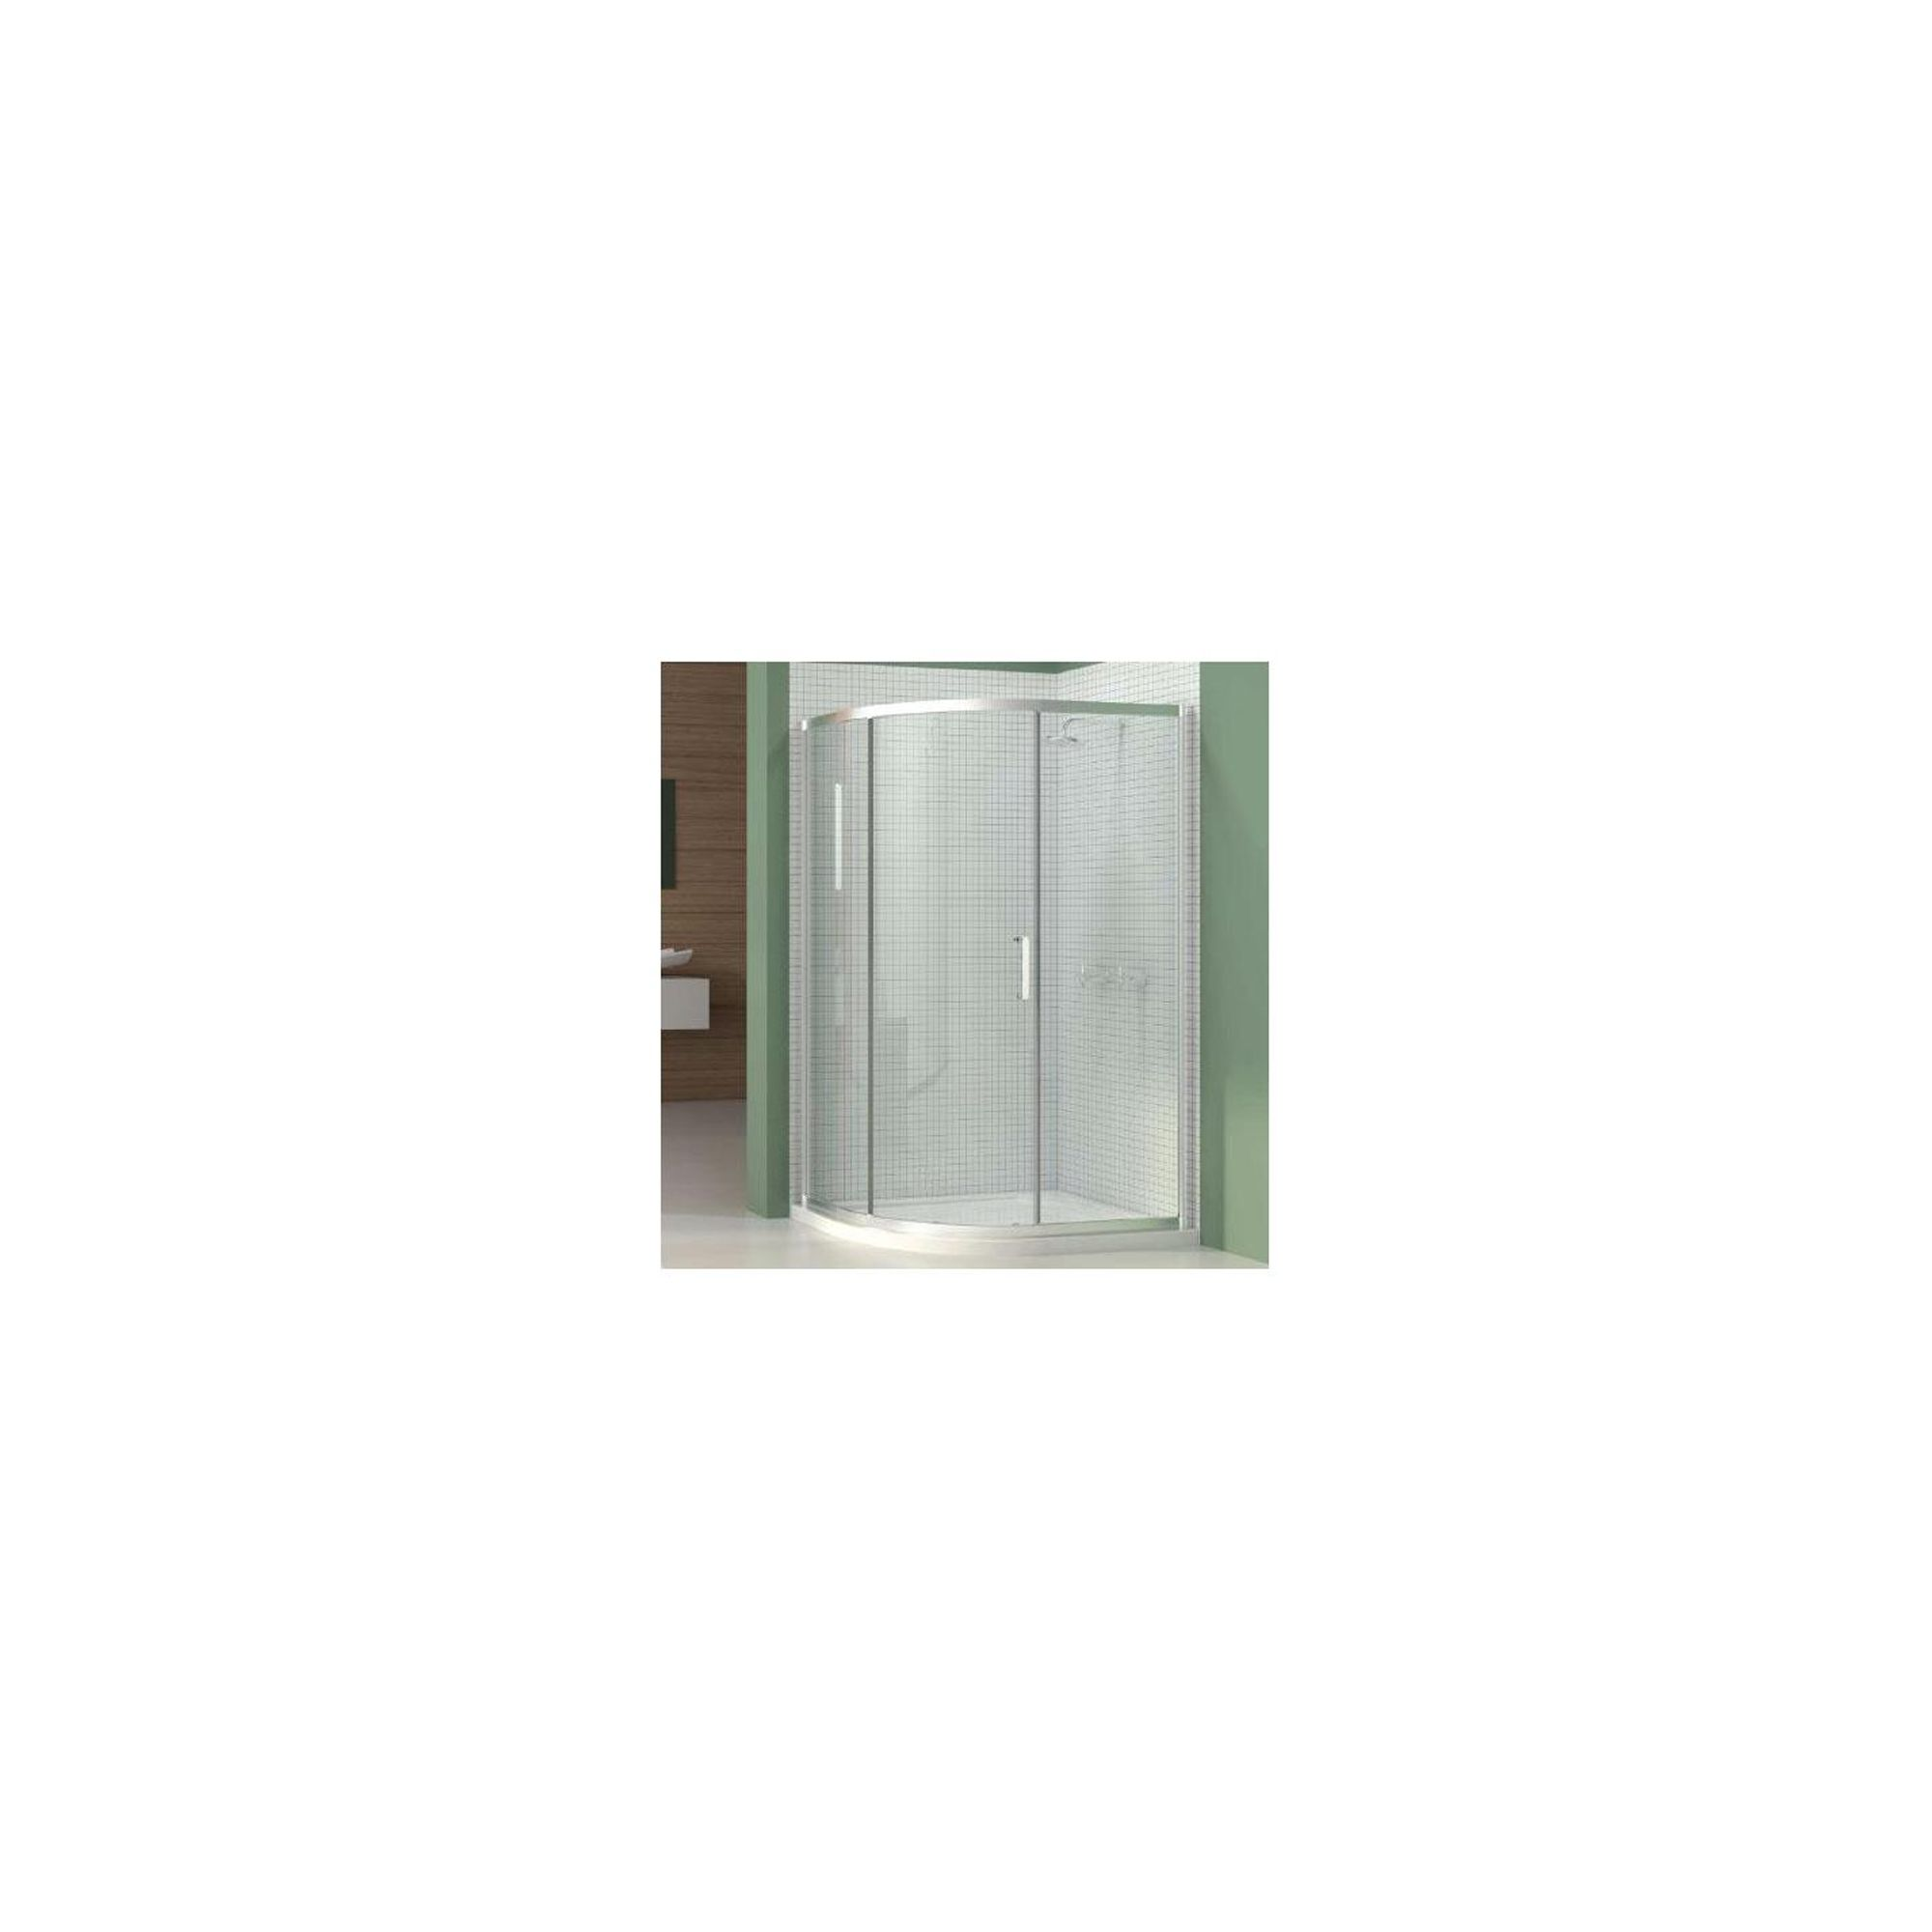 Merlyn Vivid Six Offset Quadrant Shower Door, 1200mm x 900mm, 6mm Glass at Tesco Direct